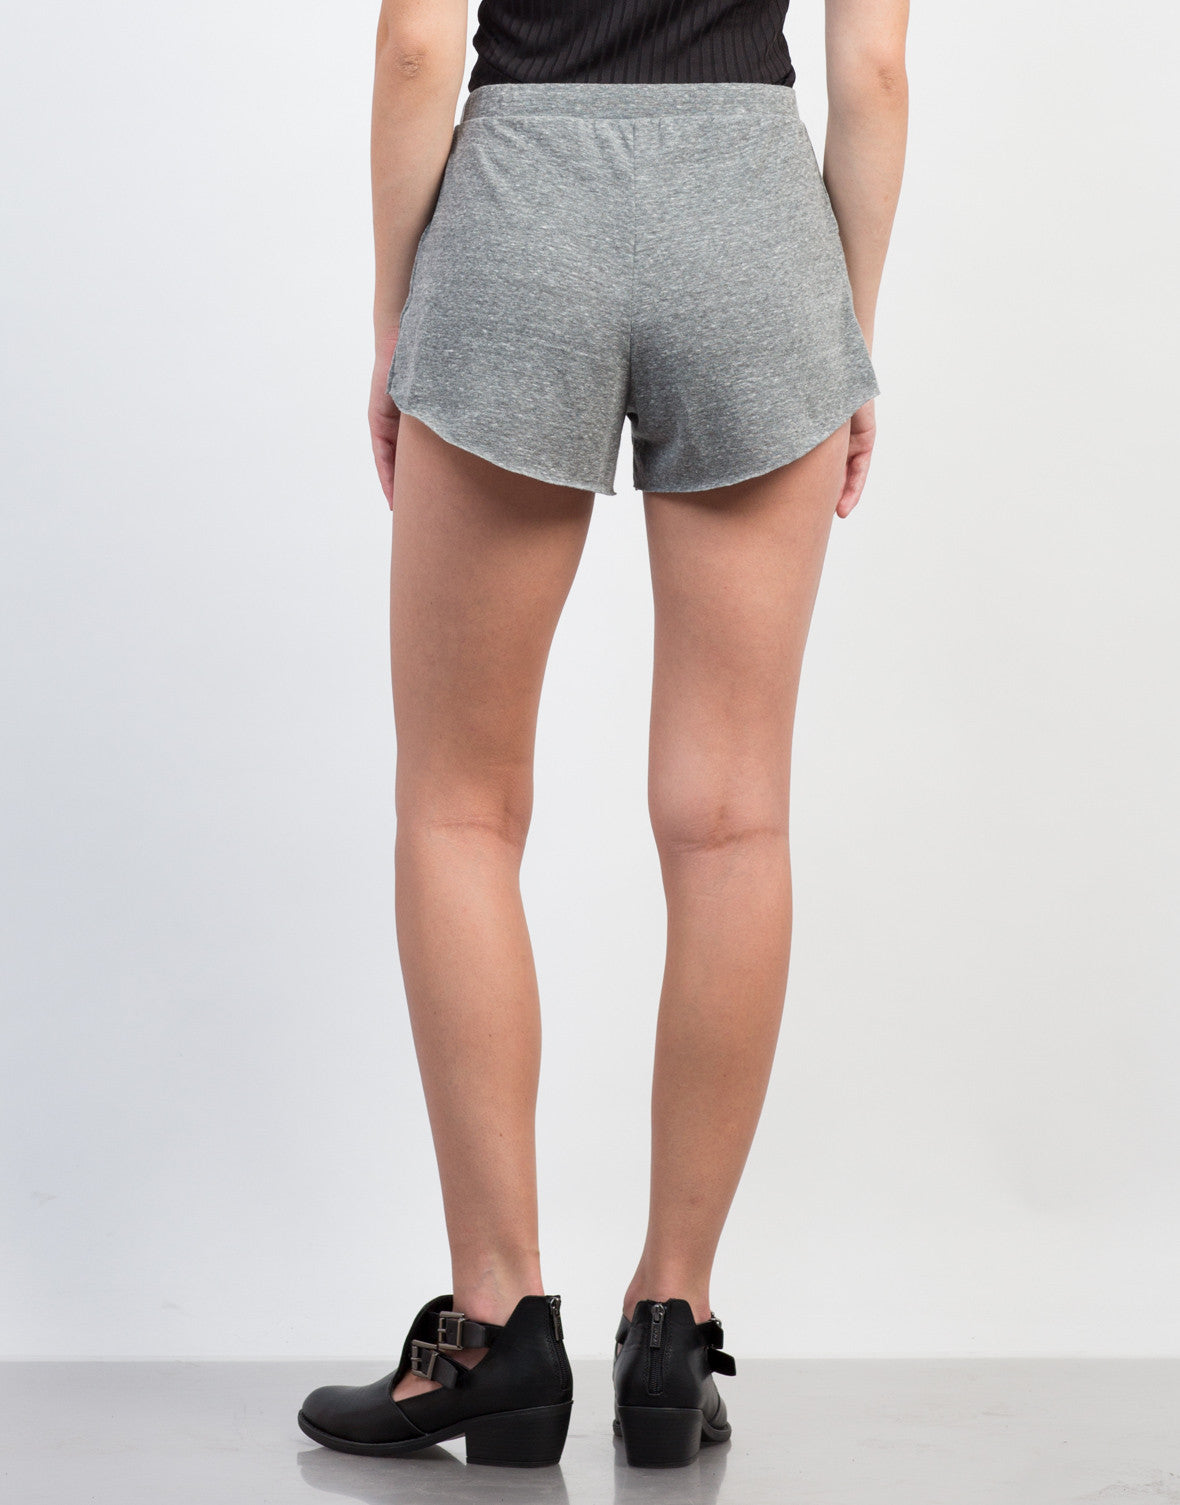 Back View of Stretch and Flow Casual Shorts